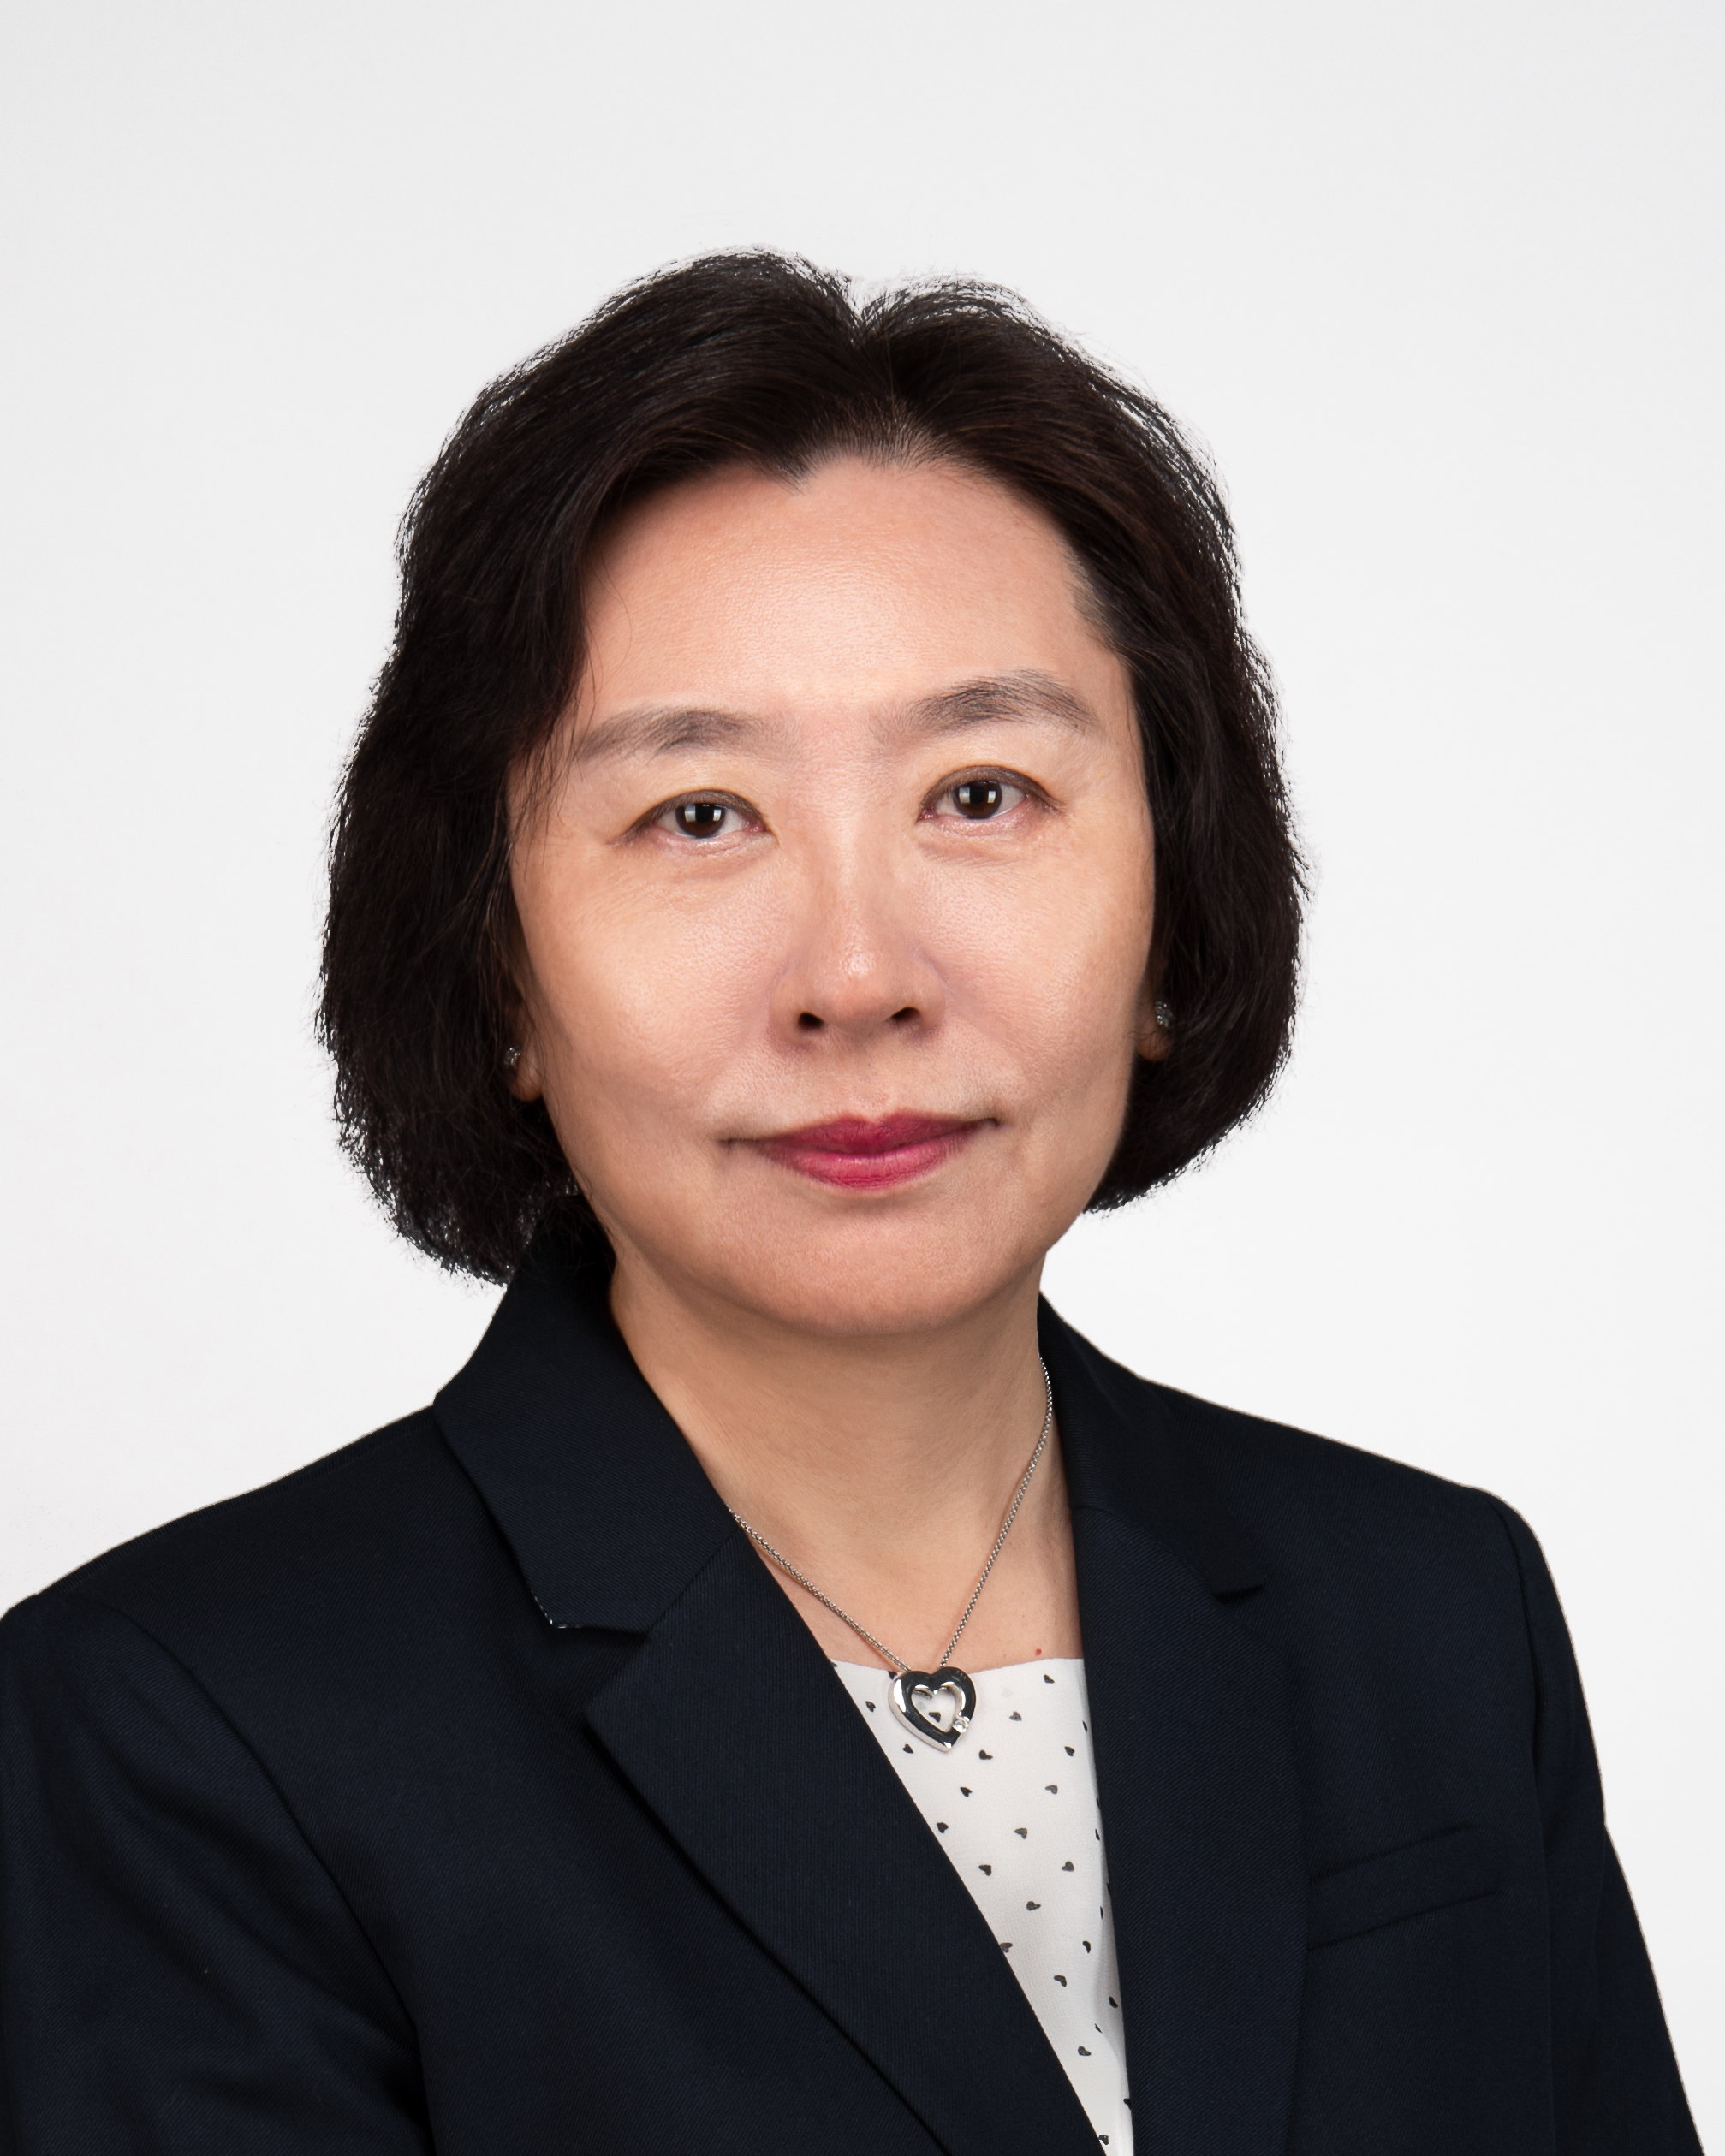 Prof. Kathy Qian LUO